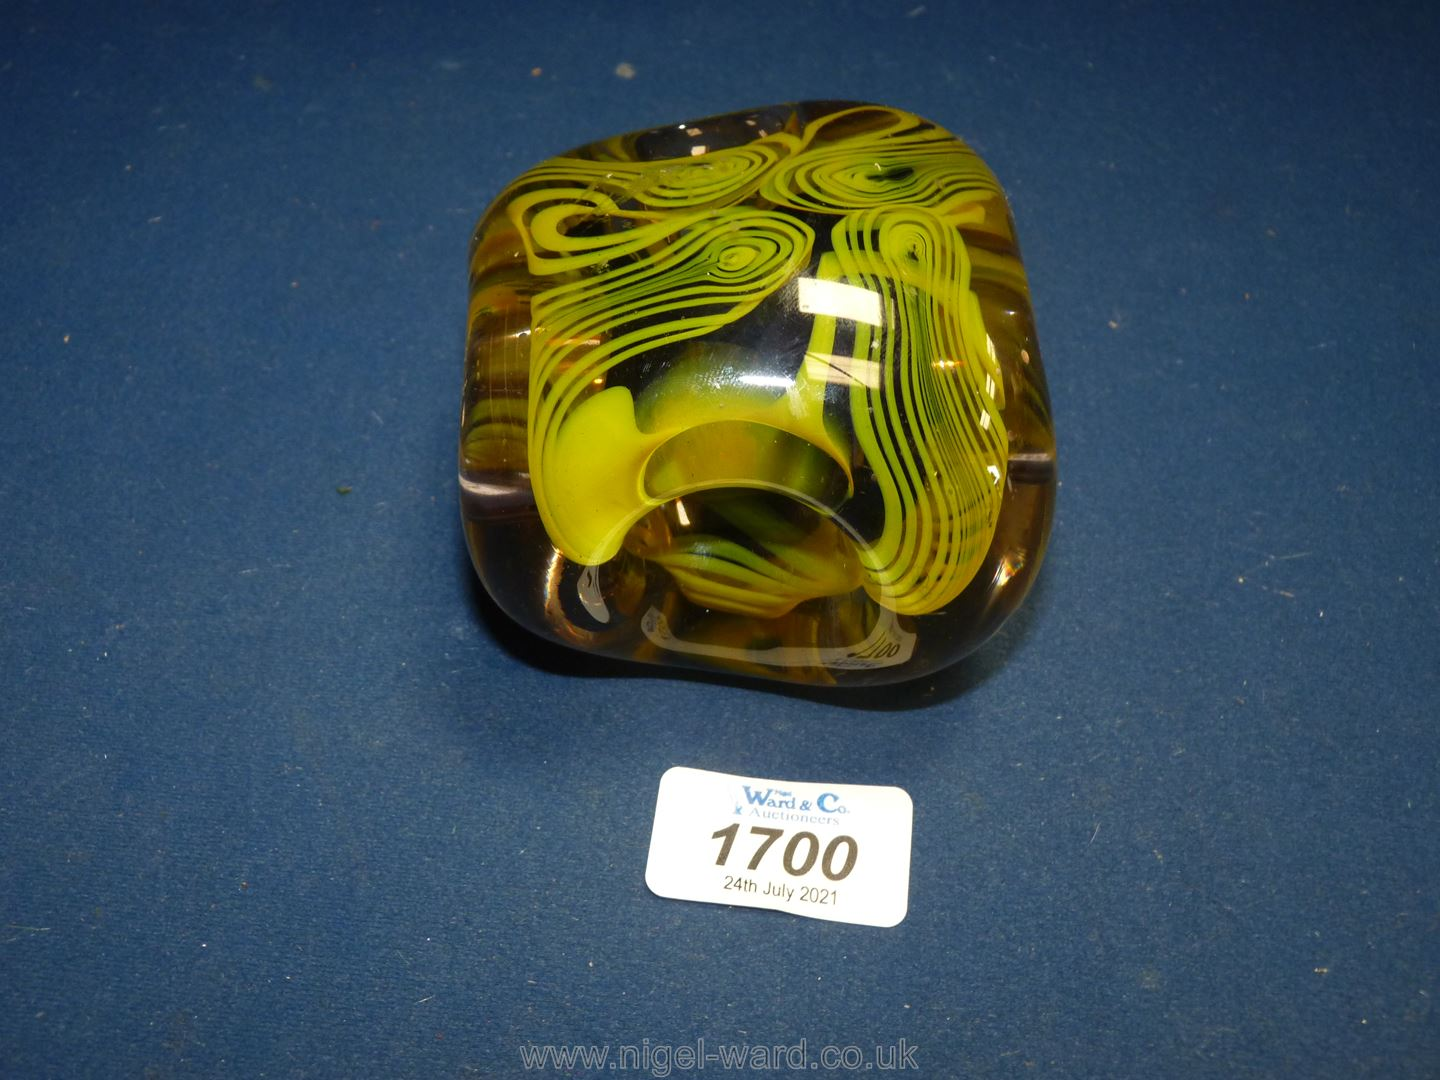 A Karlin Rushbrooke paperweight in yellow and black,